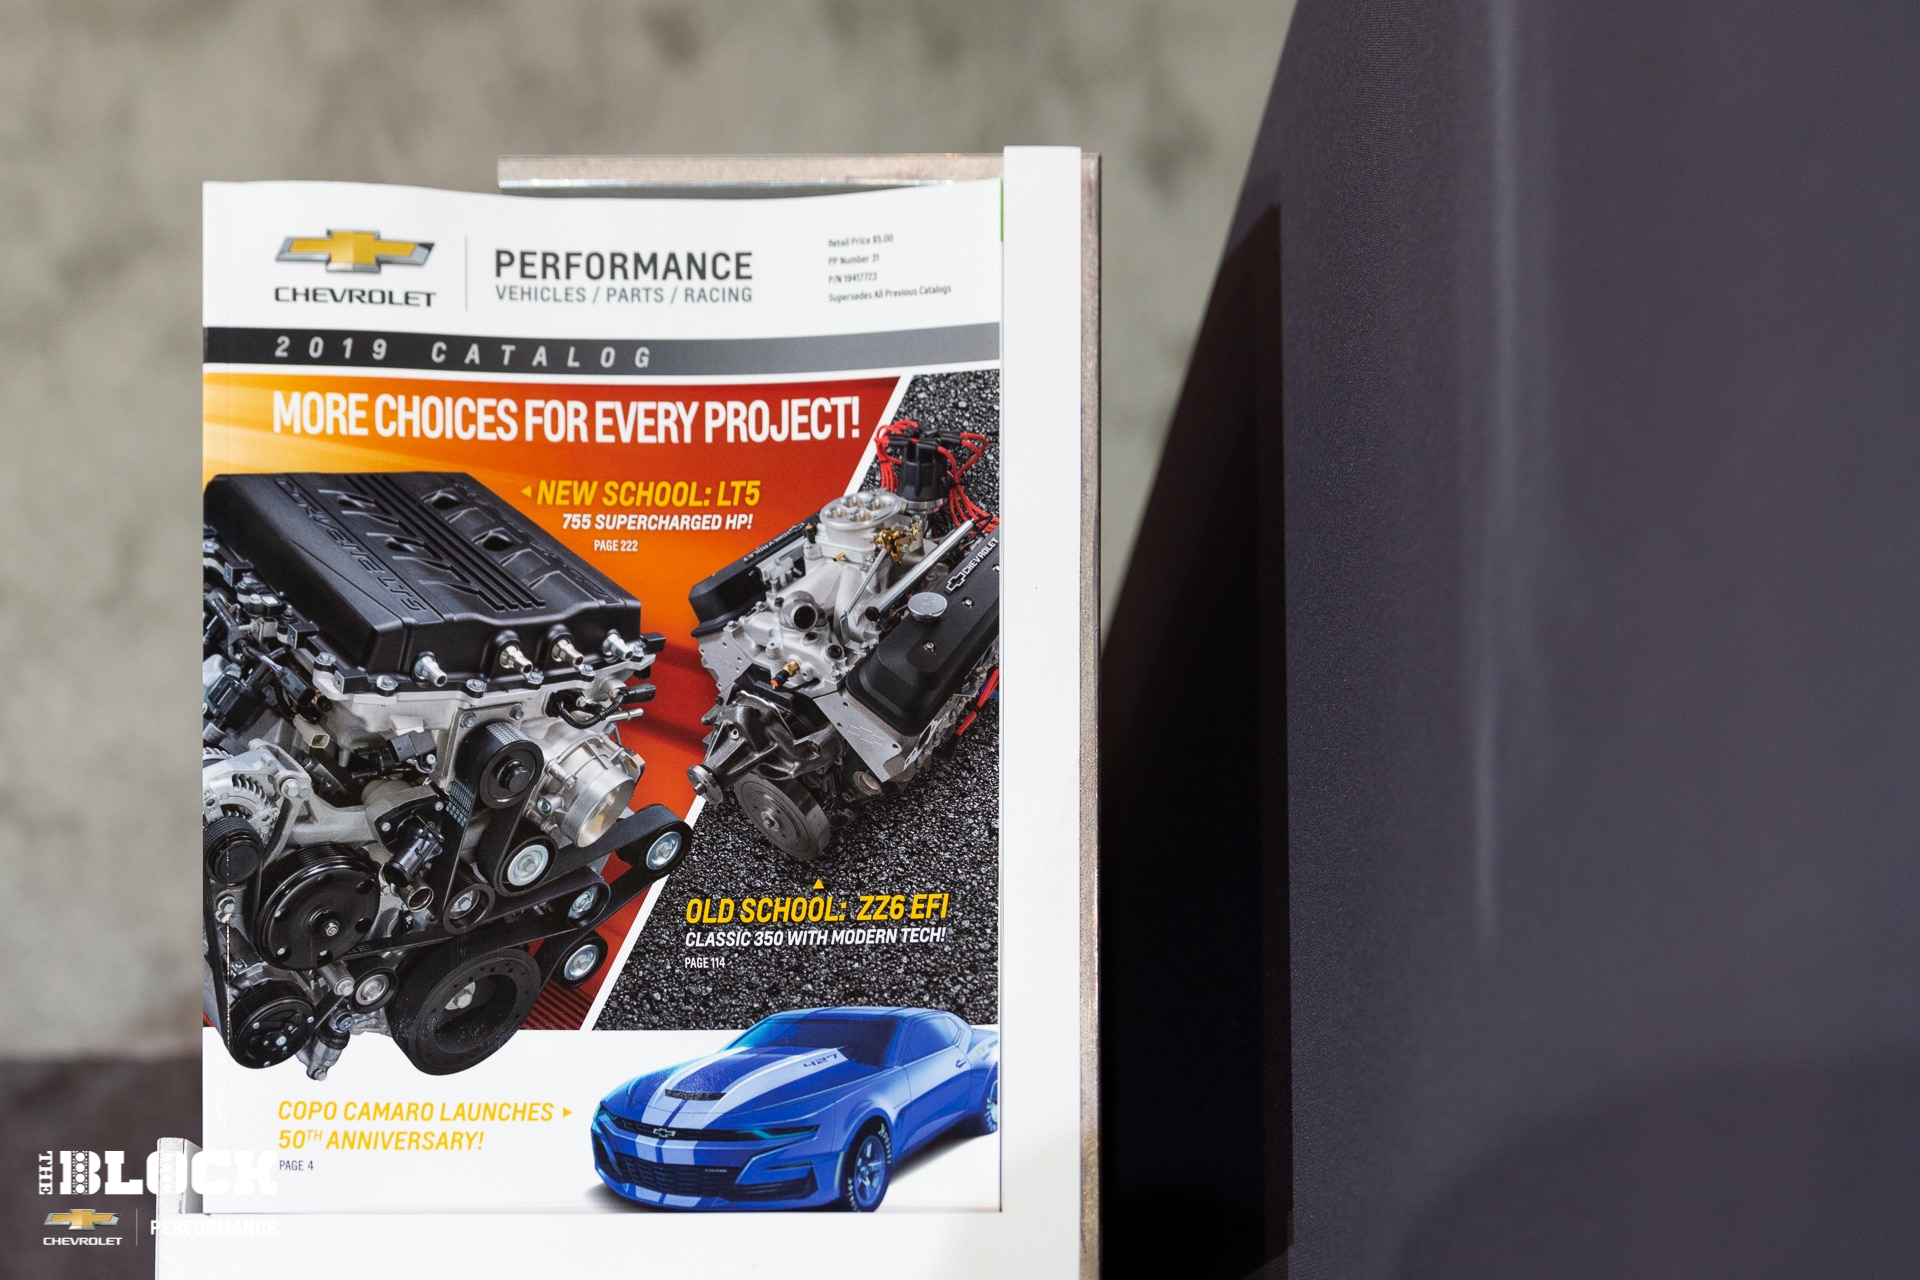 2019 Chevrolet Performance Catalog Revealed